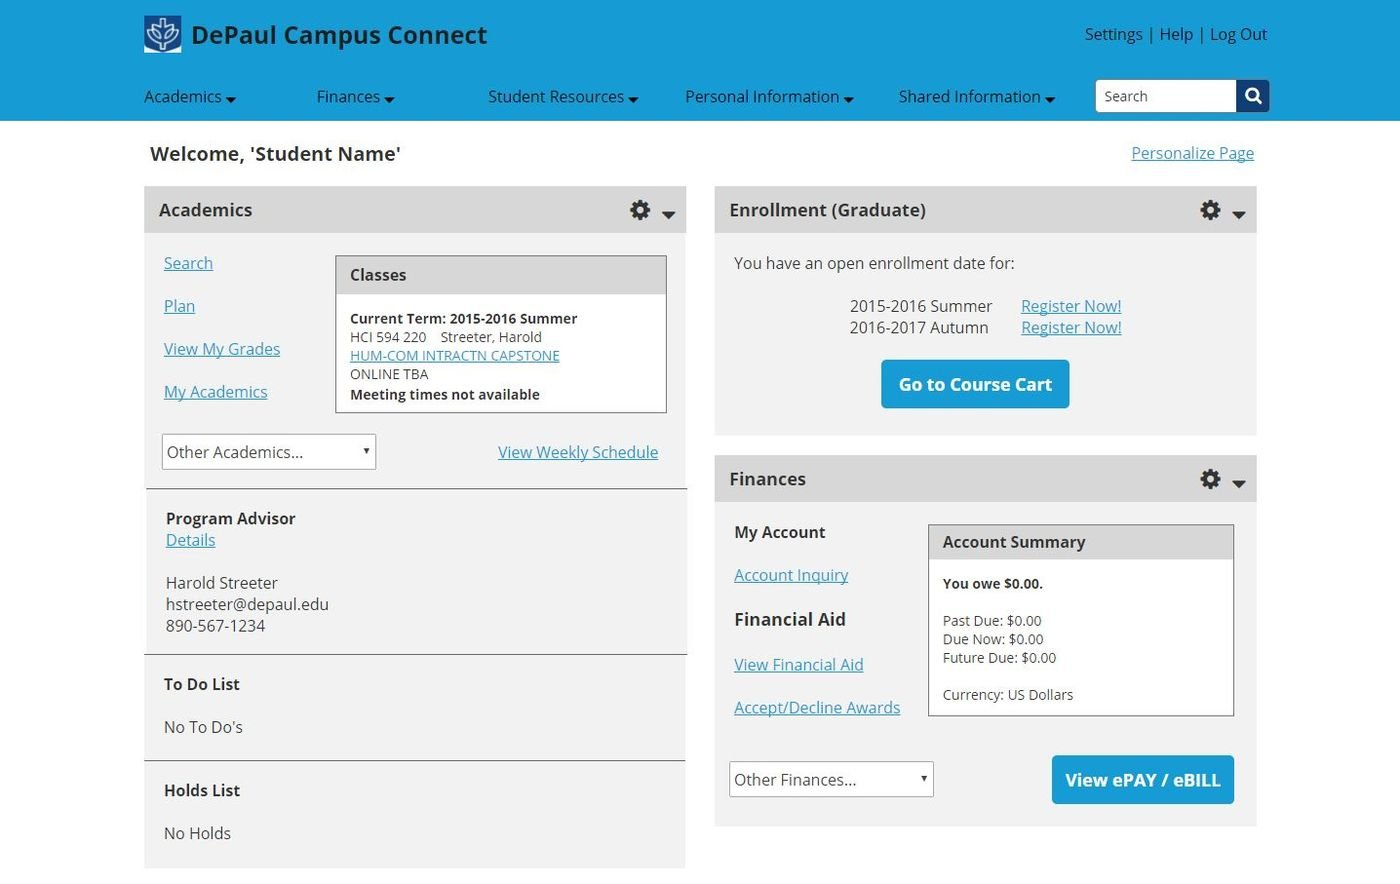 DePaul Campus Connect Redesign by Dominique Carney at